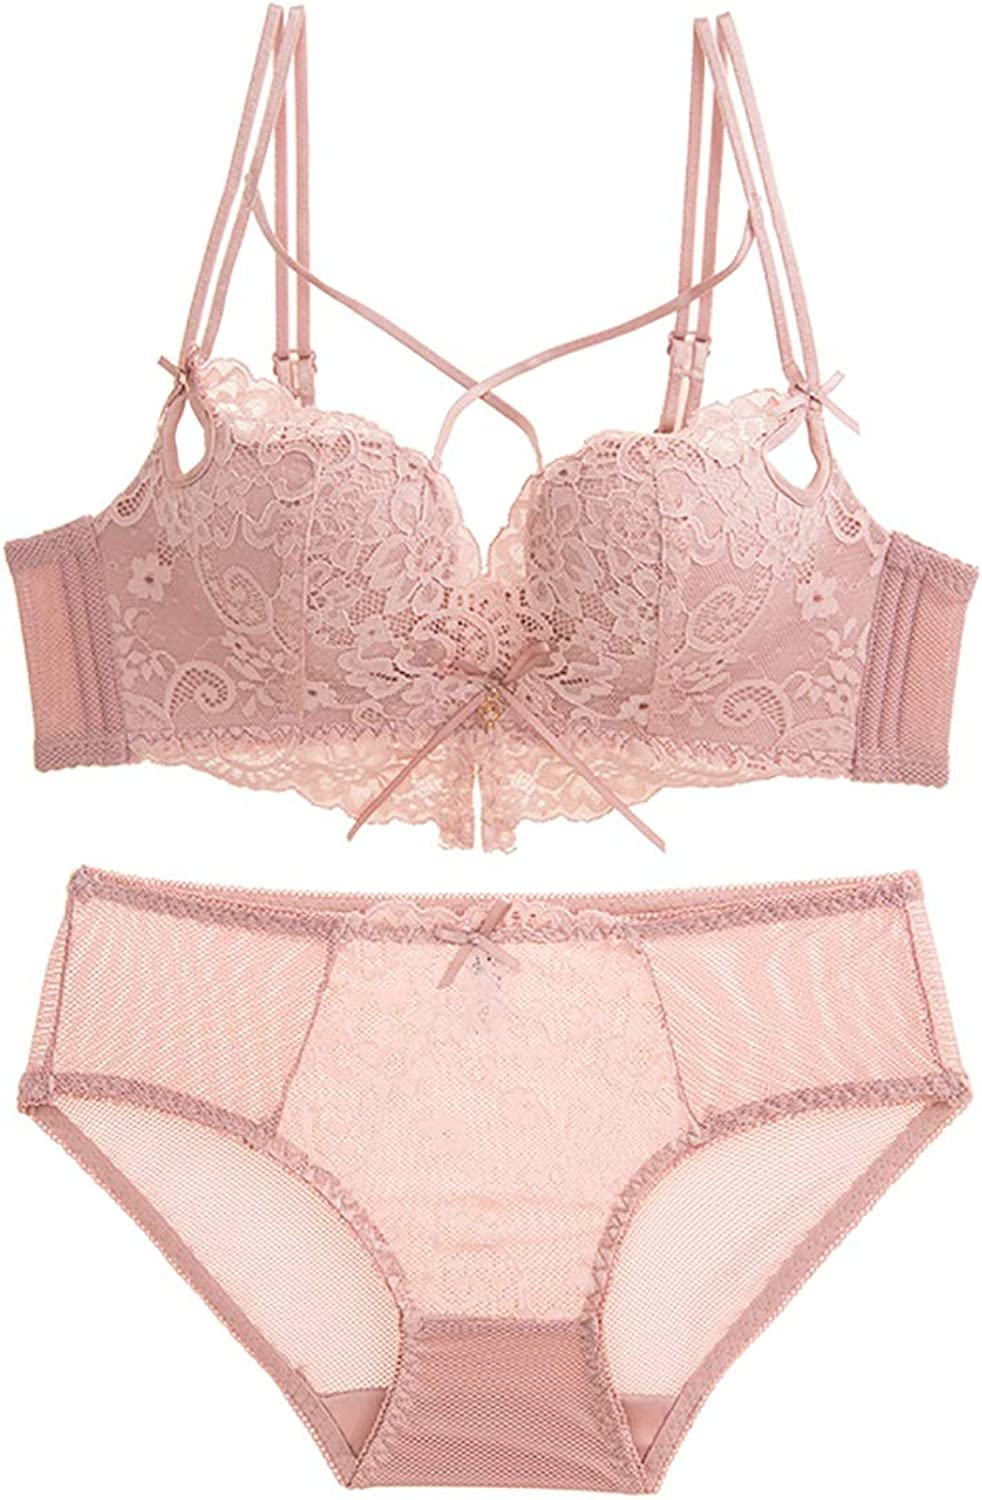 NICE' living hall Lace Embroidered Pattern Comfortably Gathered Openwork Sexy Bra Set, Sponge, no Steel Ring, Adjustable Chest Type, Four Rows of Three Buckles. Comfortable (Size   80A=34A=75A)